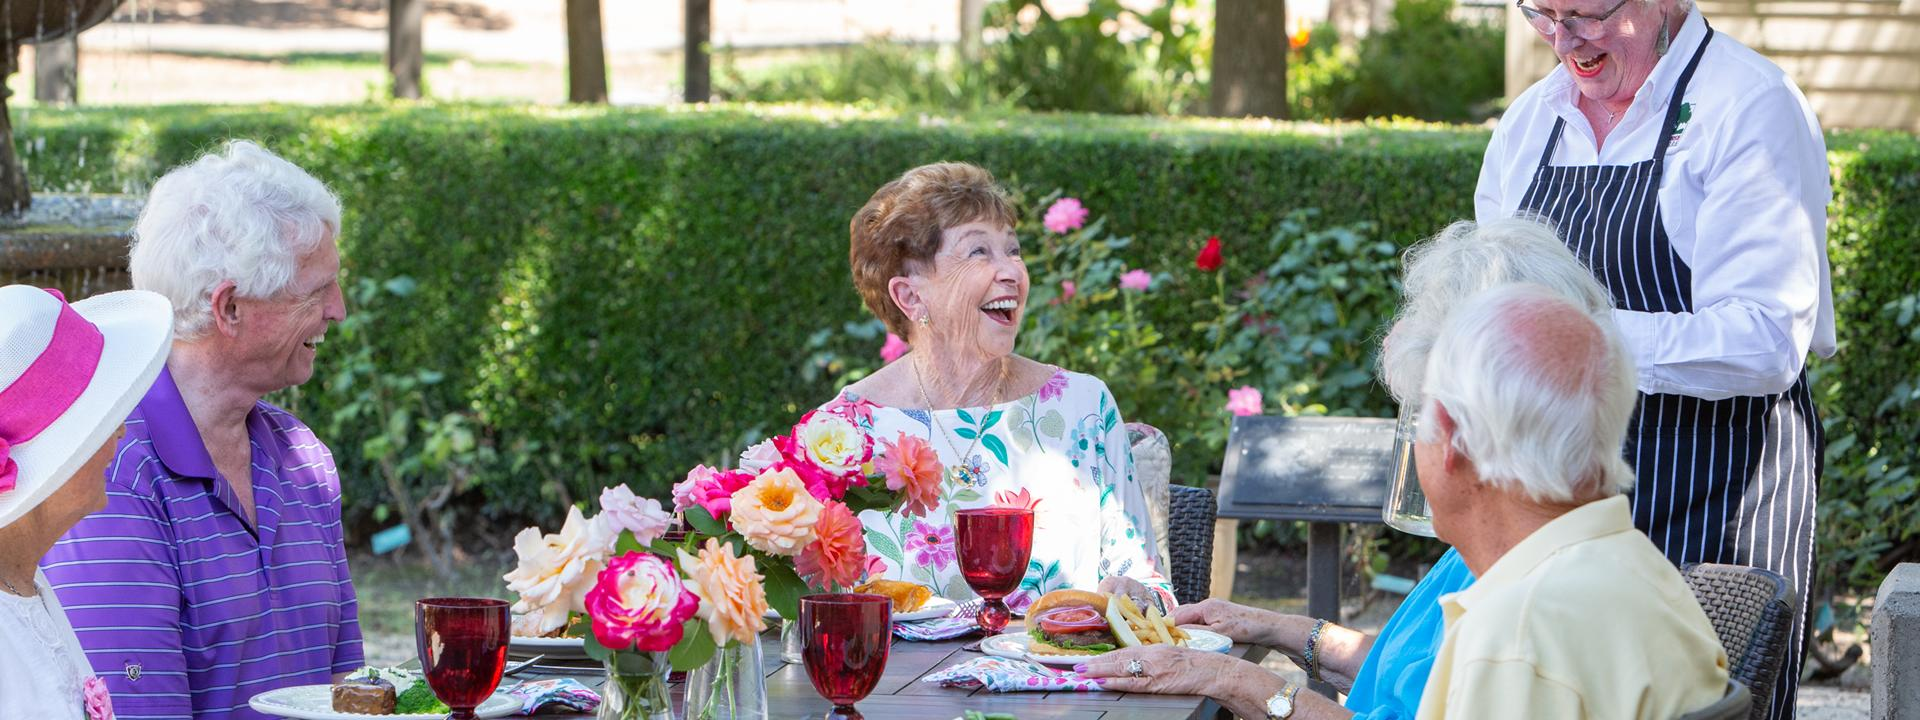 Residents laughing and enjoying lunch on the patio